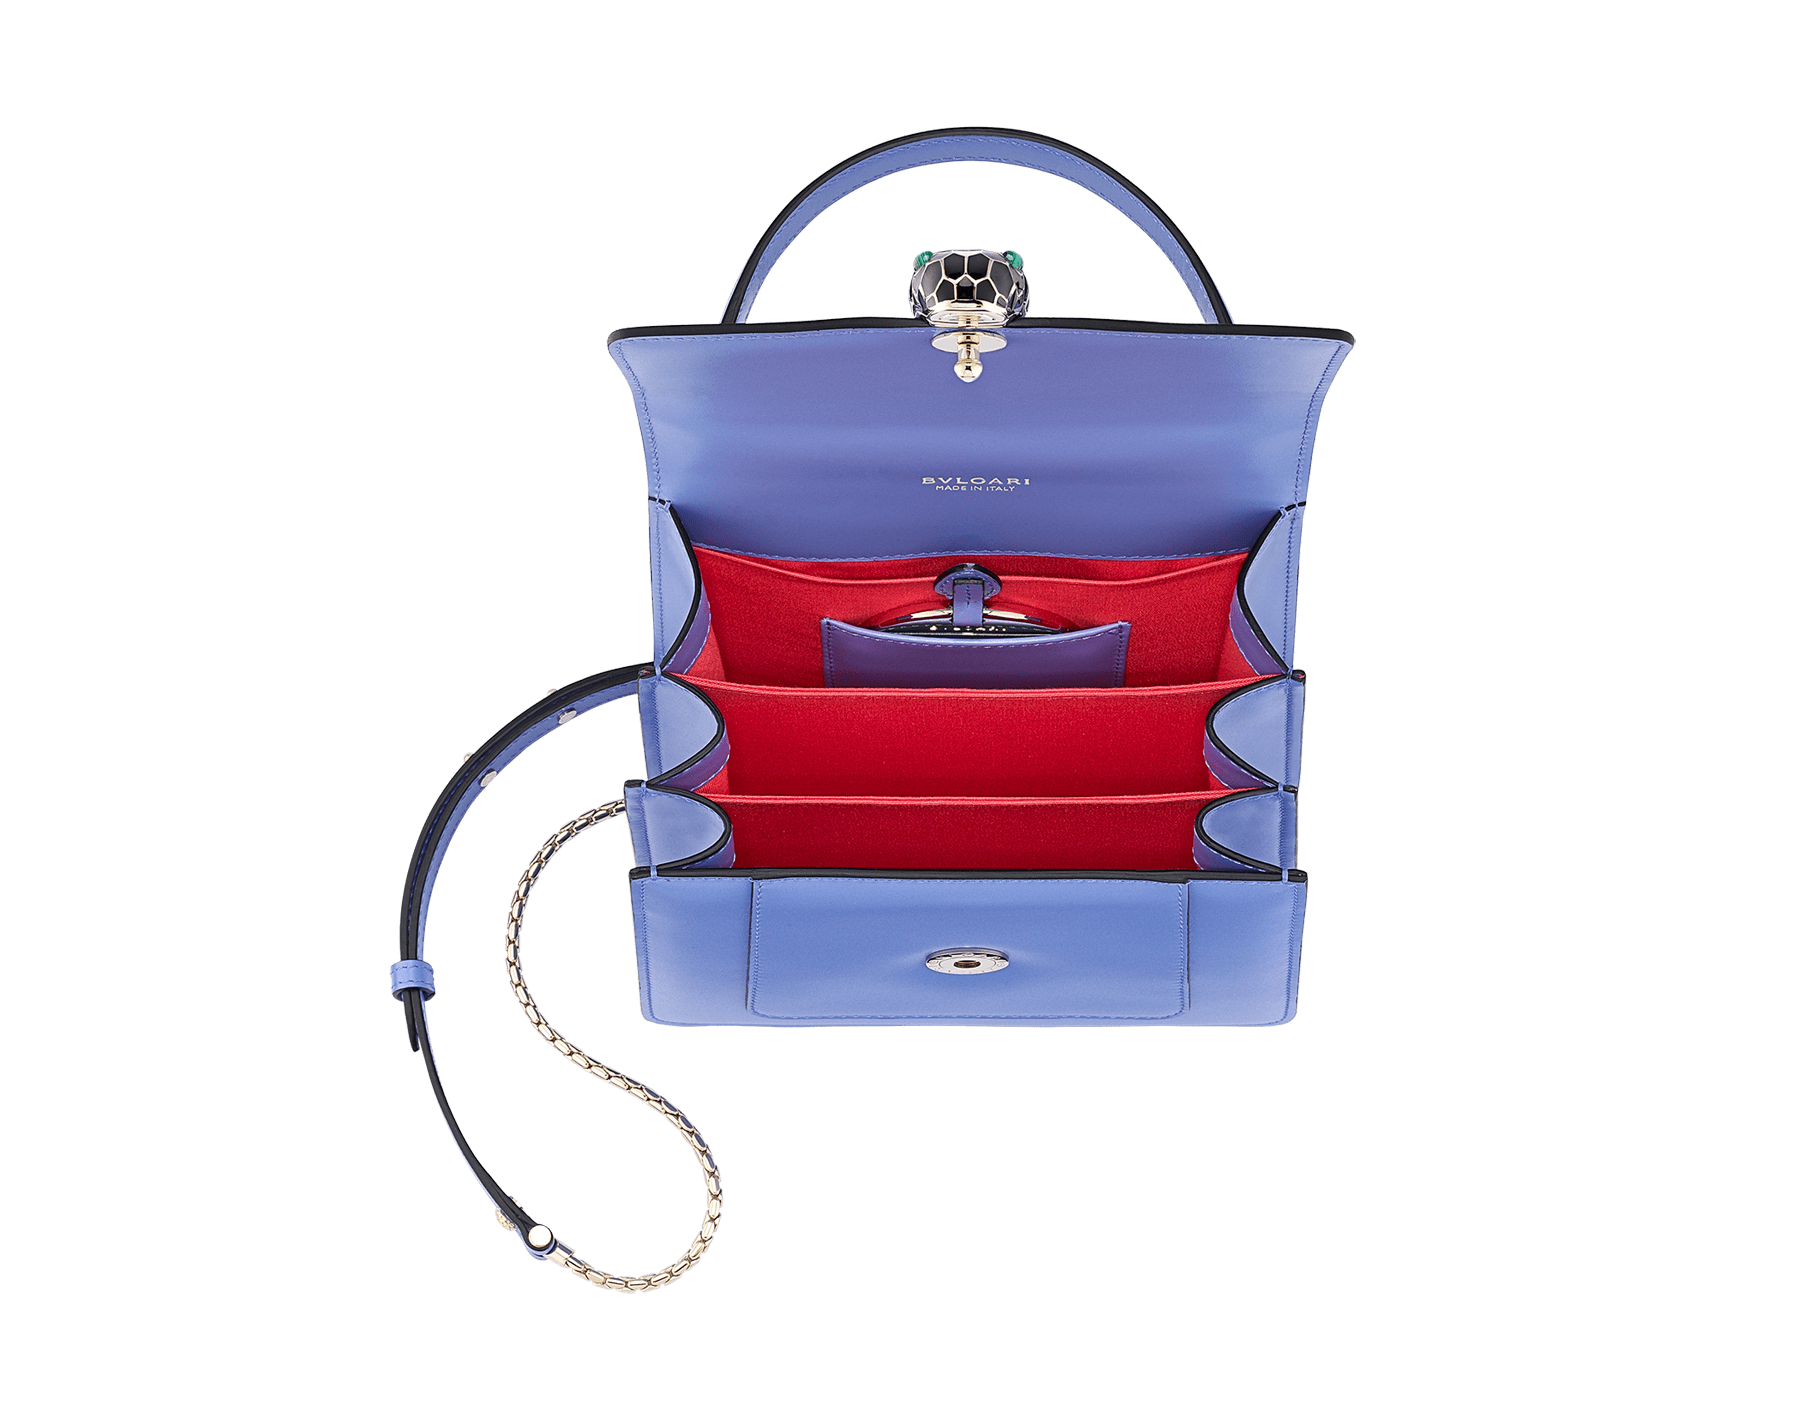 """Serpenti Forever "" top-handle bag in Lavender Amethyst lilac calf leather with Reef Coral red grosgrain inner lining. Iconic snakehead closure in light gold-plated brass embellished with black and white agate enamel and green malachite eyes 290517 image 4"